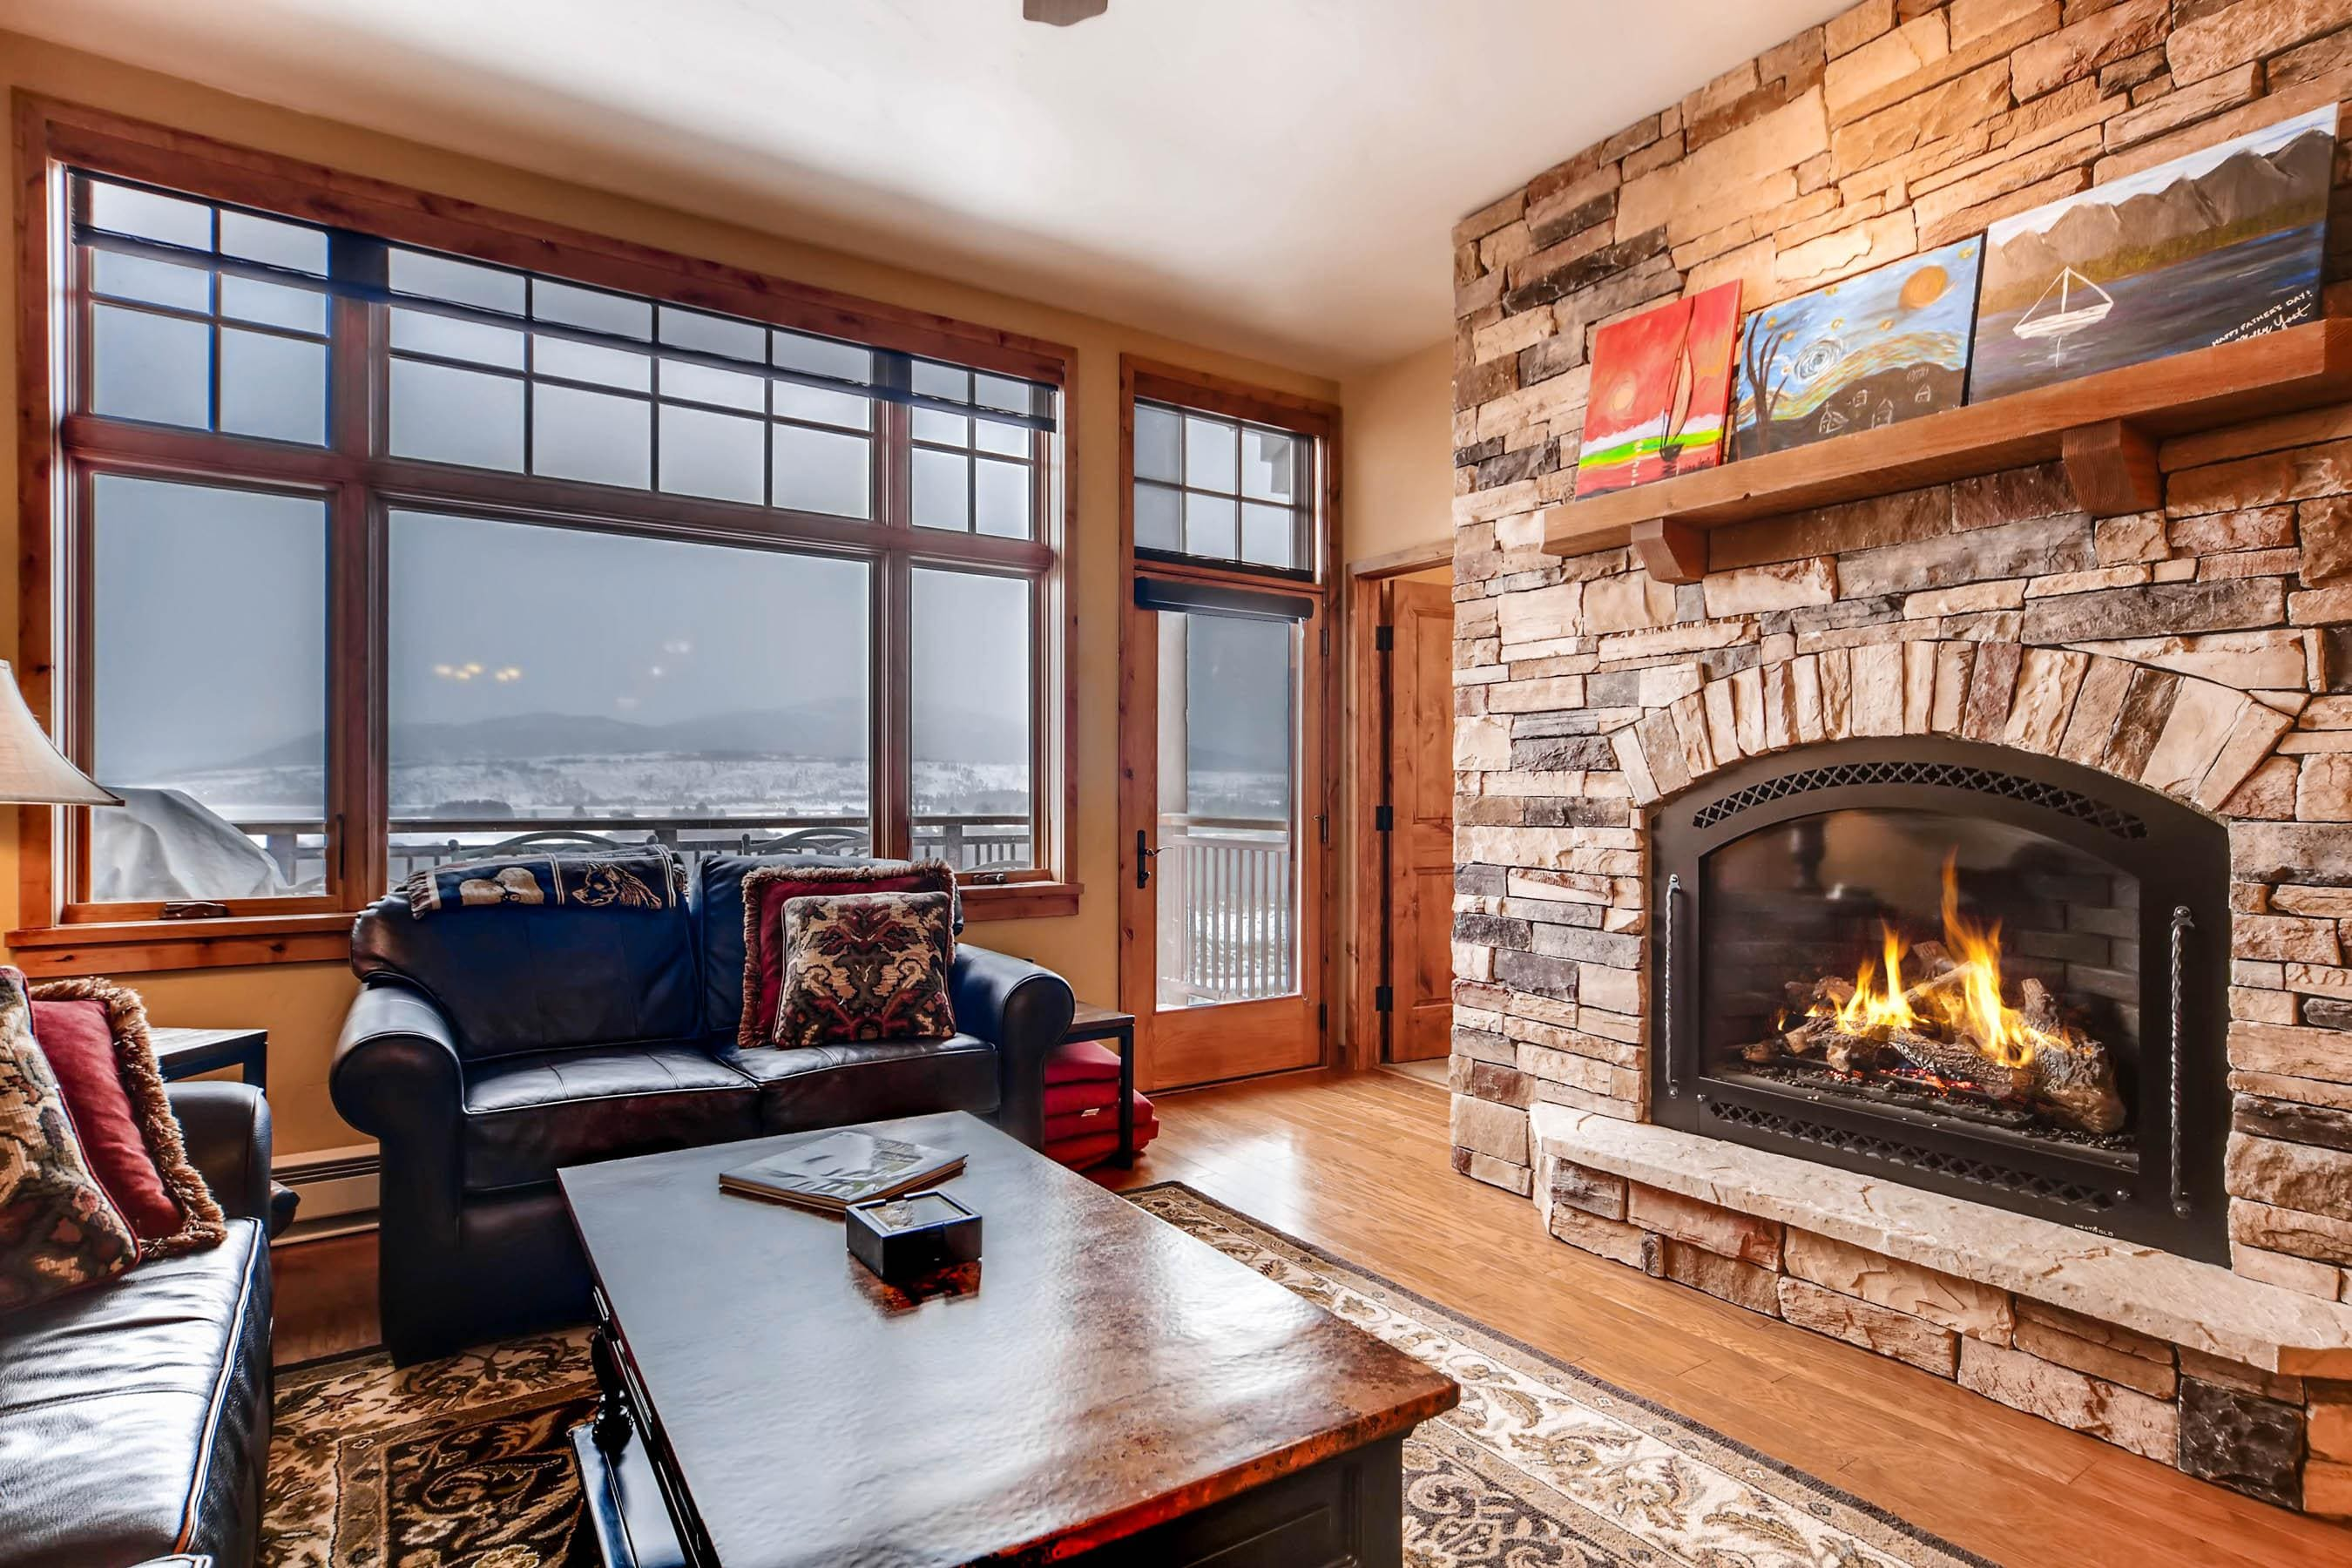 Welcome to Timberline Cove! With a fire crackling, enjoy great views of the Lake Dillon Reservoir.